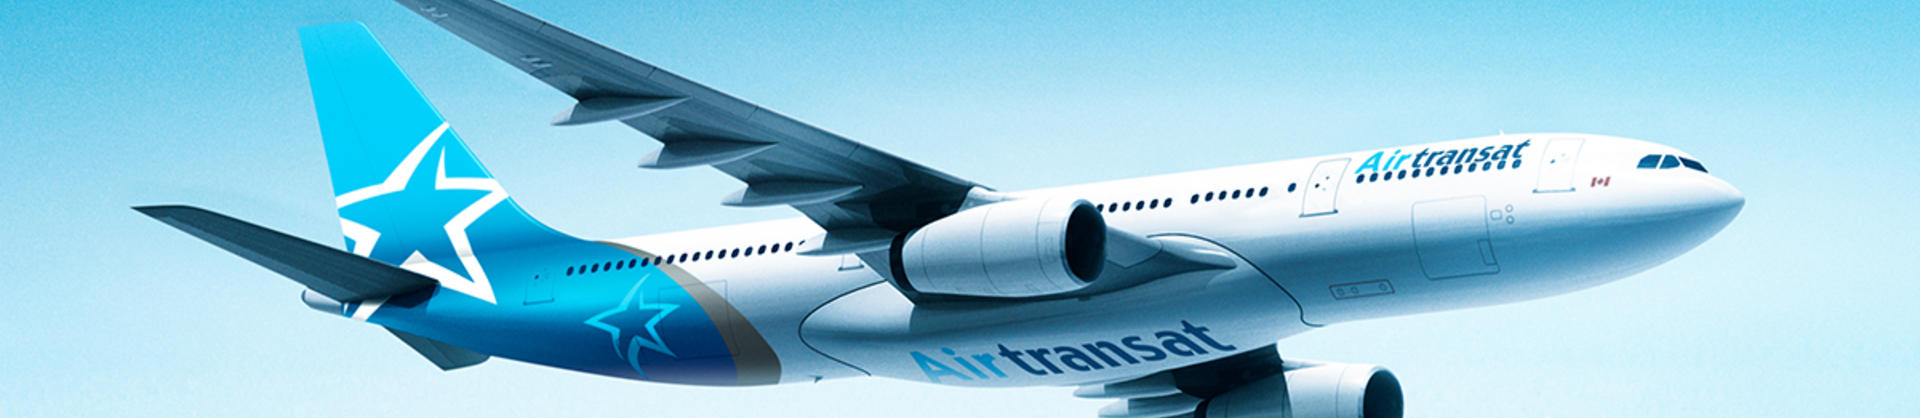 Air Transat Aircraft